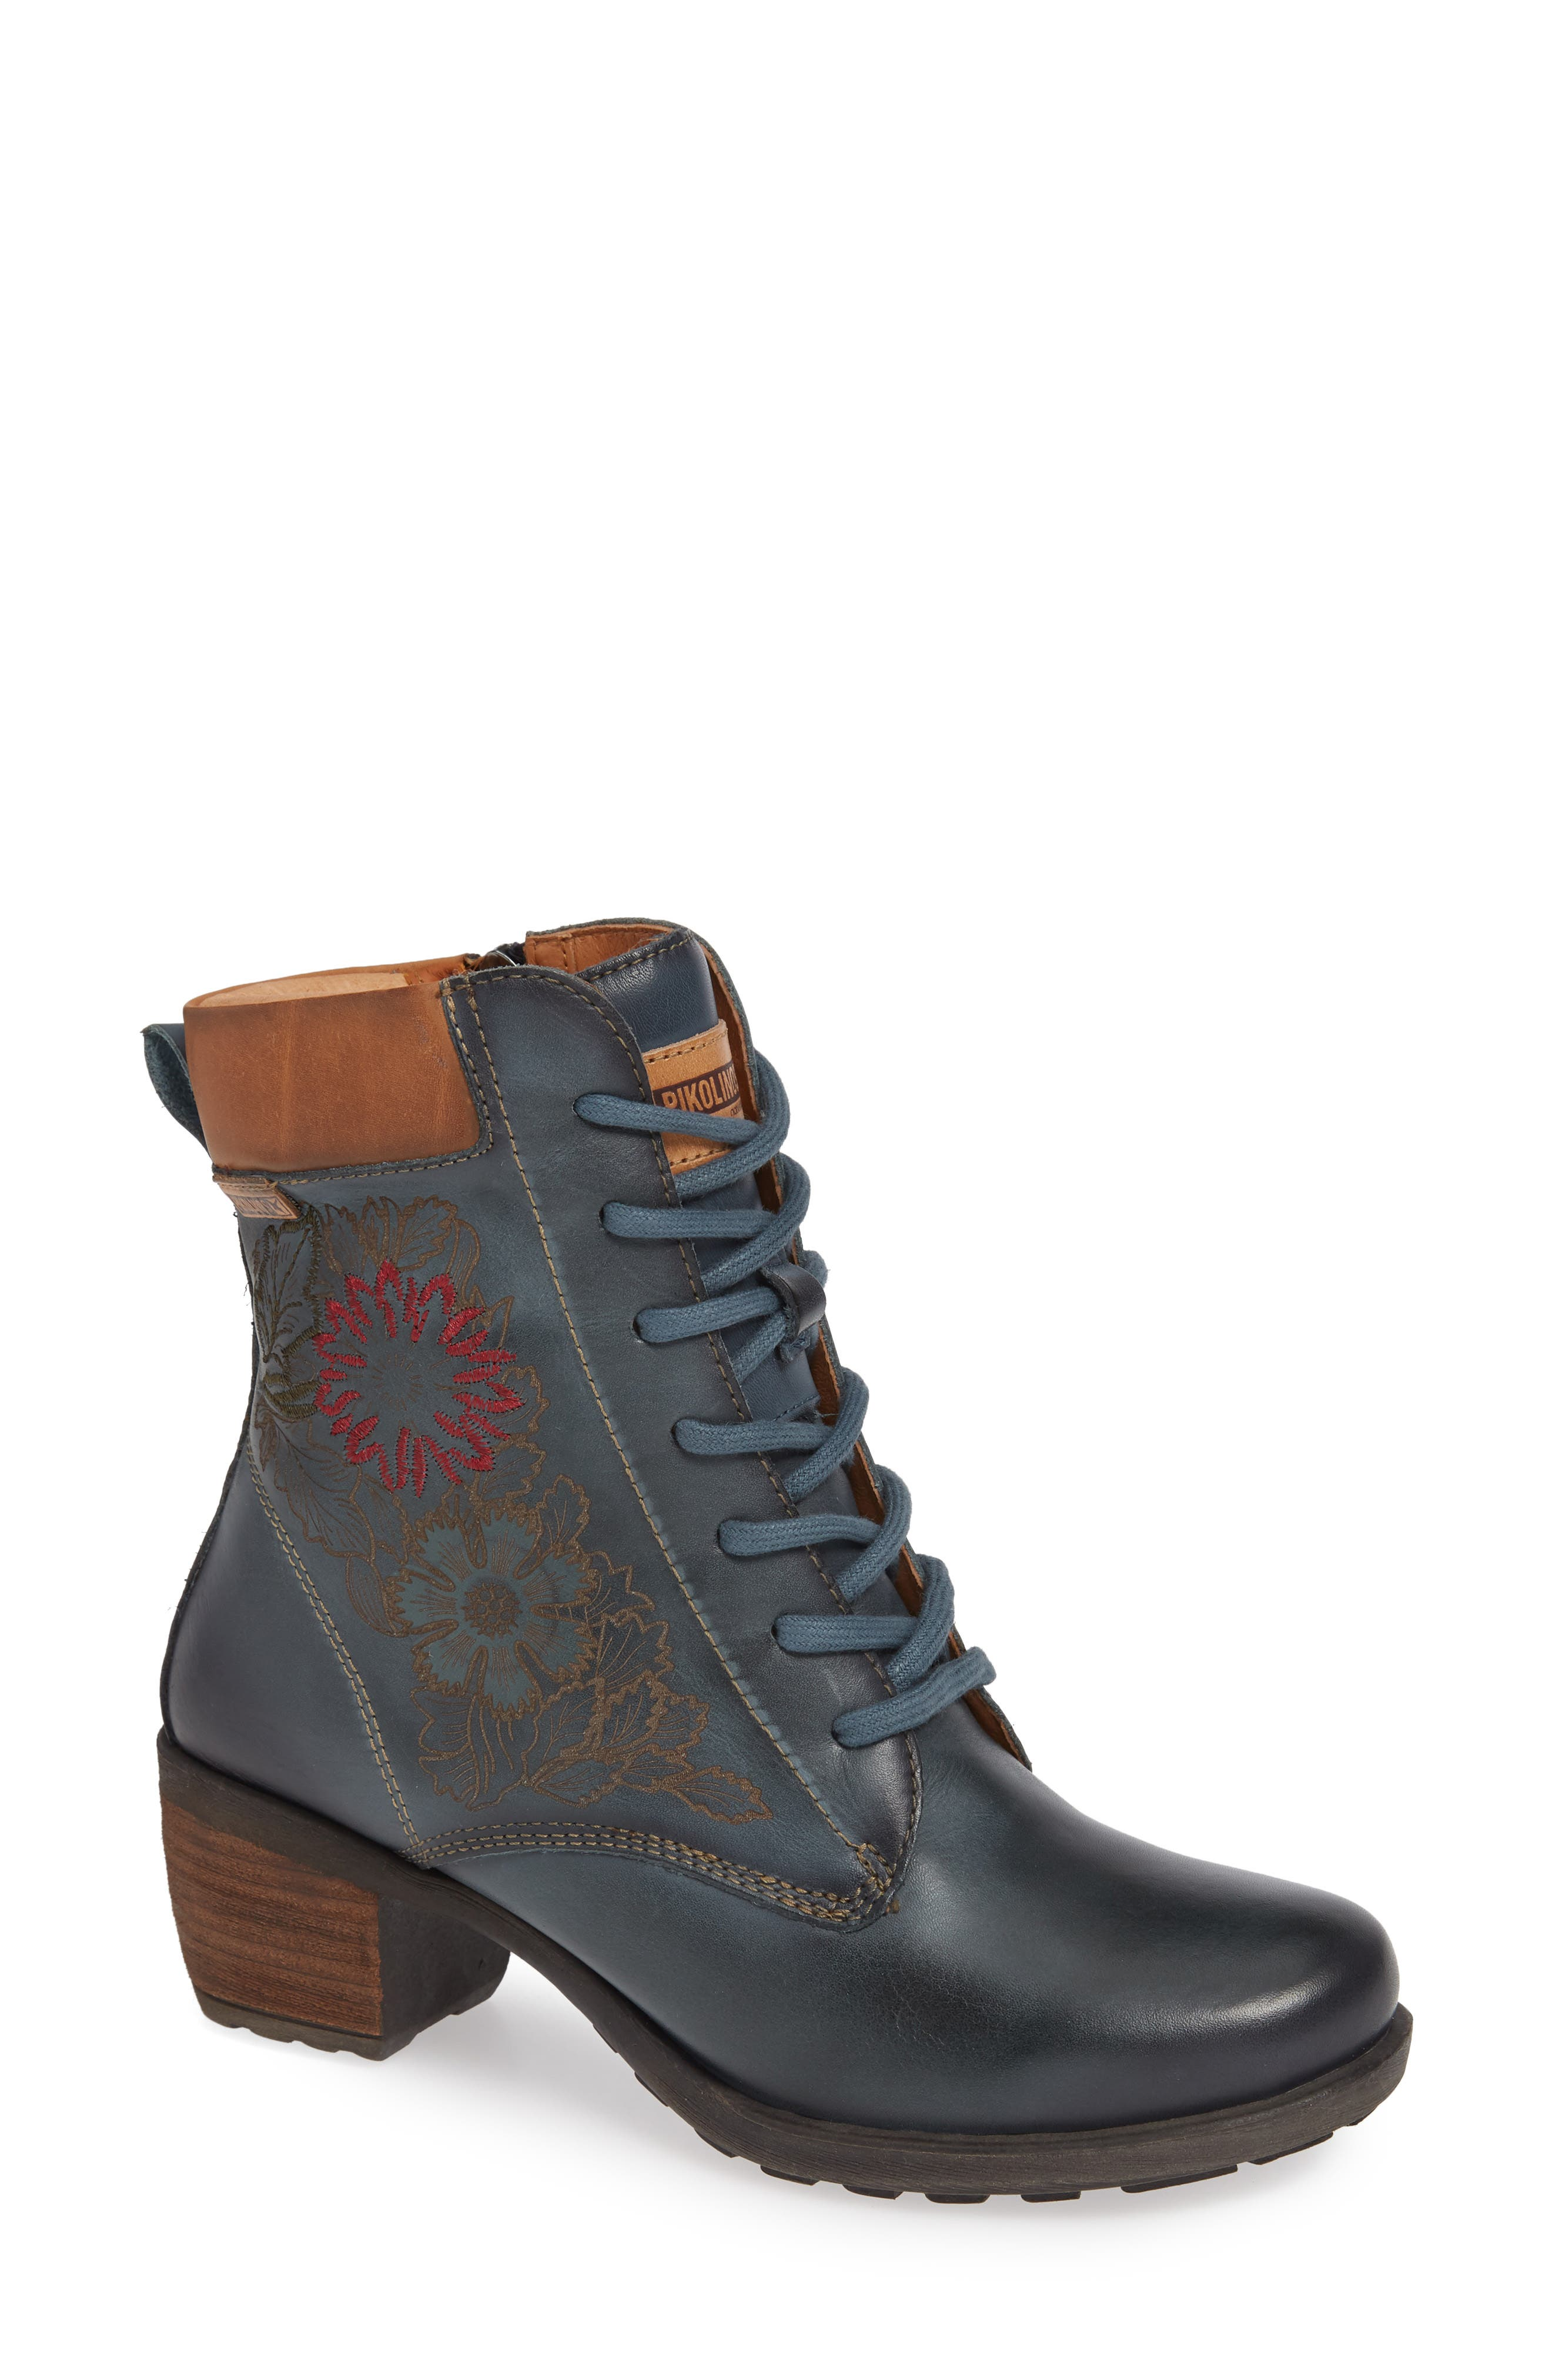 Le Mans Embroidered Lace-Up Bootie,                         Main,                         color, OCEAN LEATHER